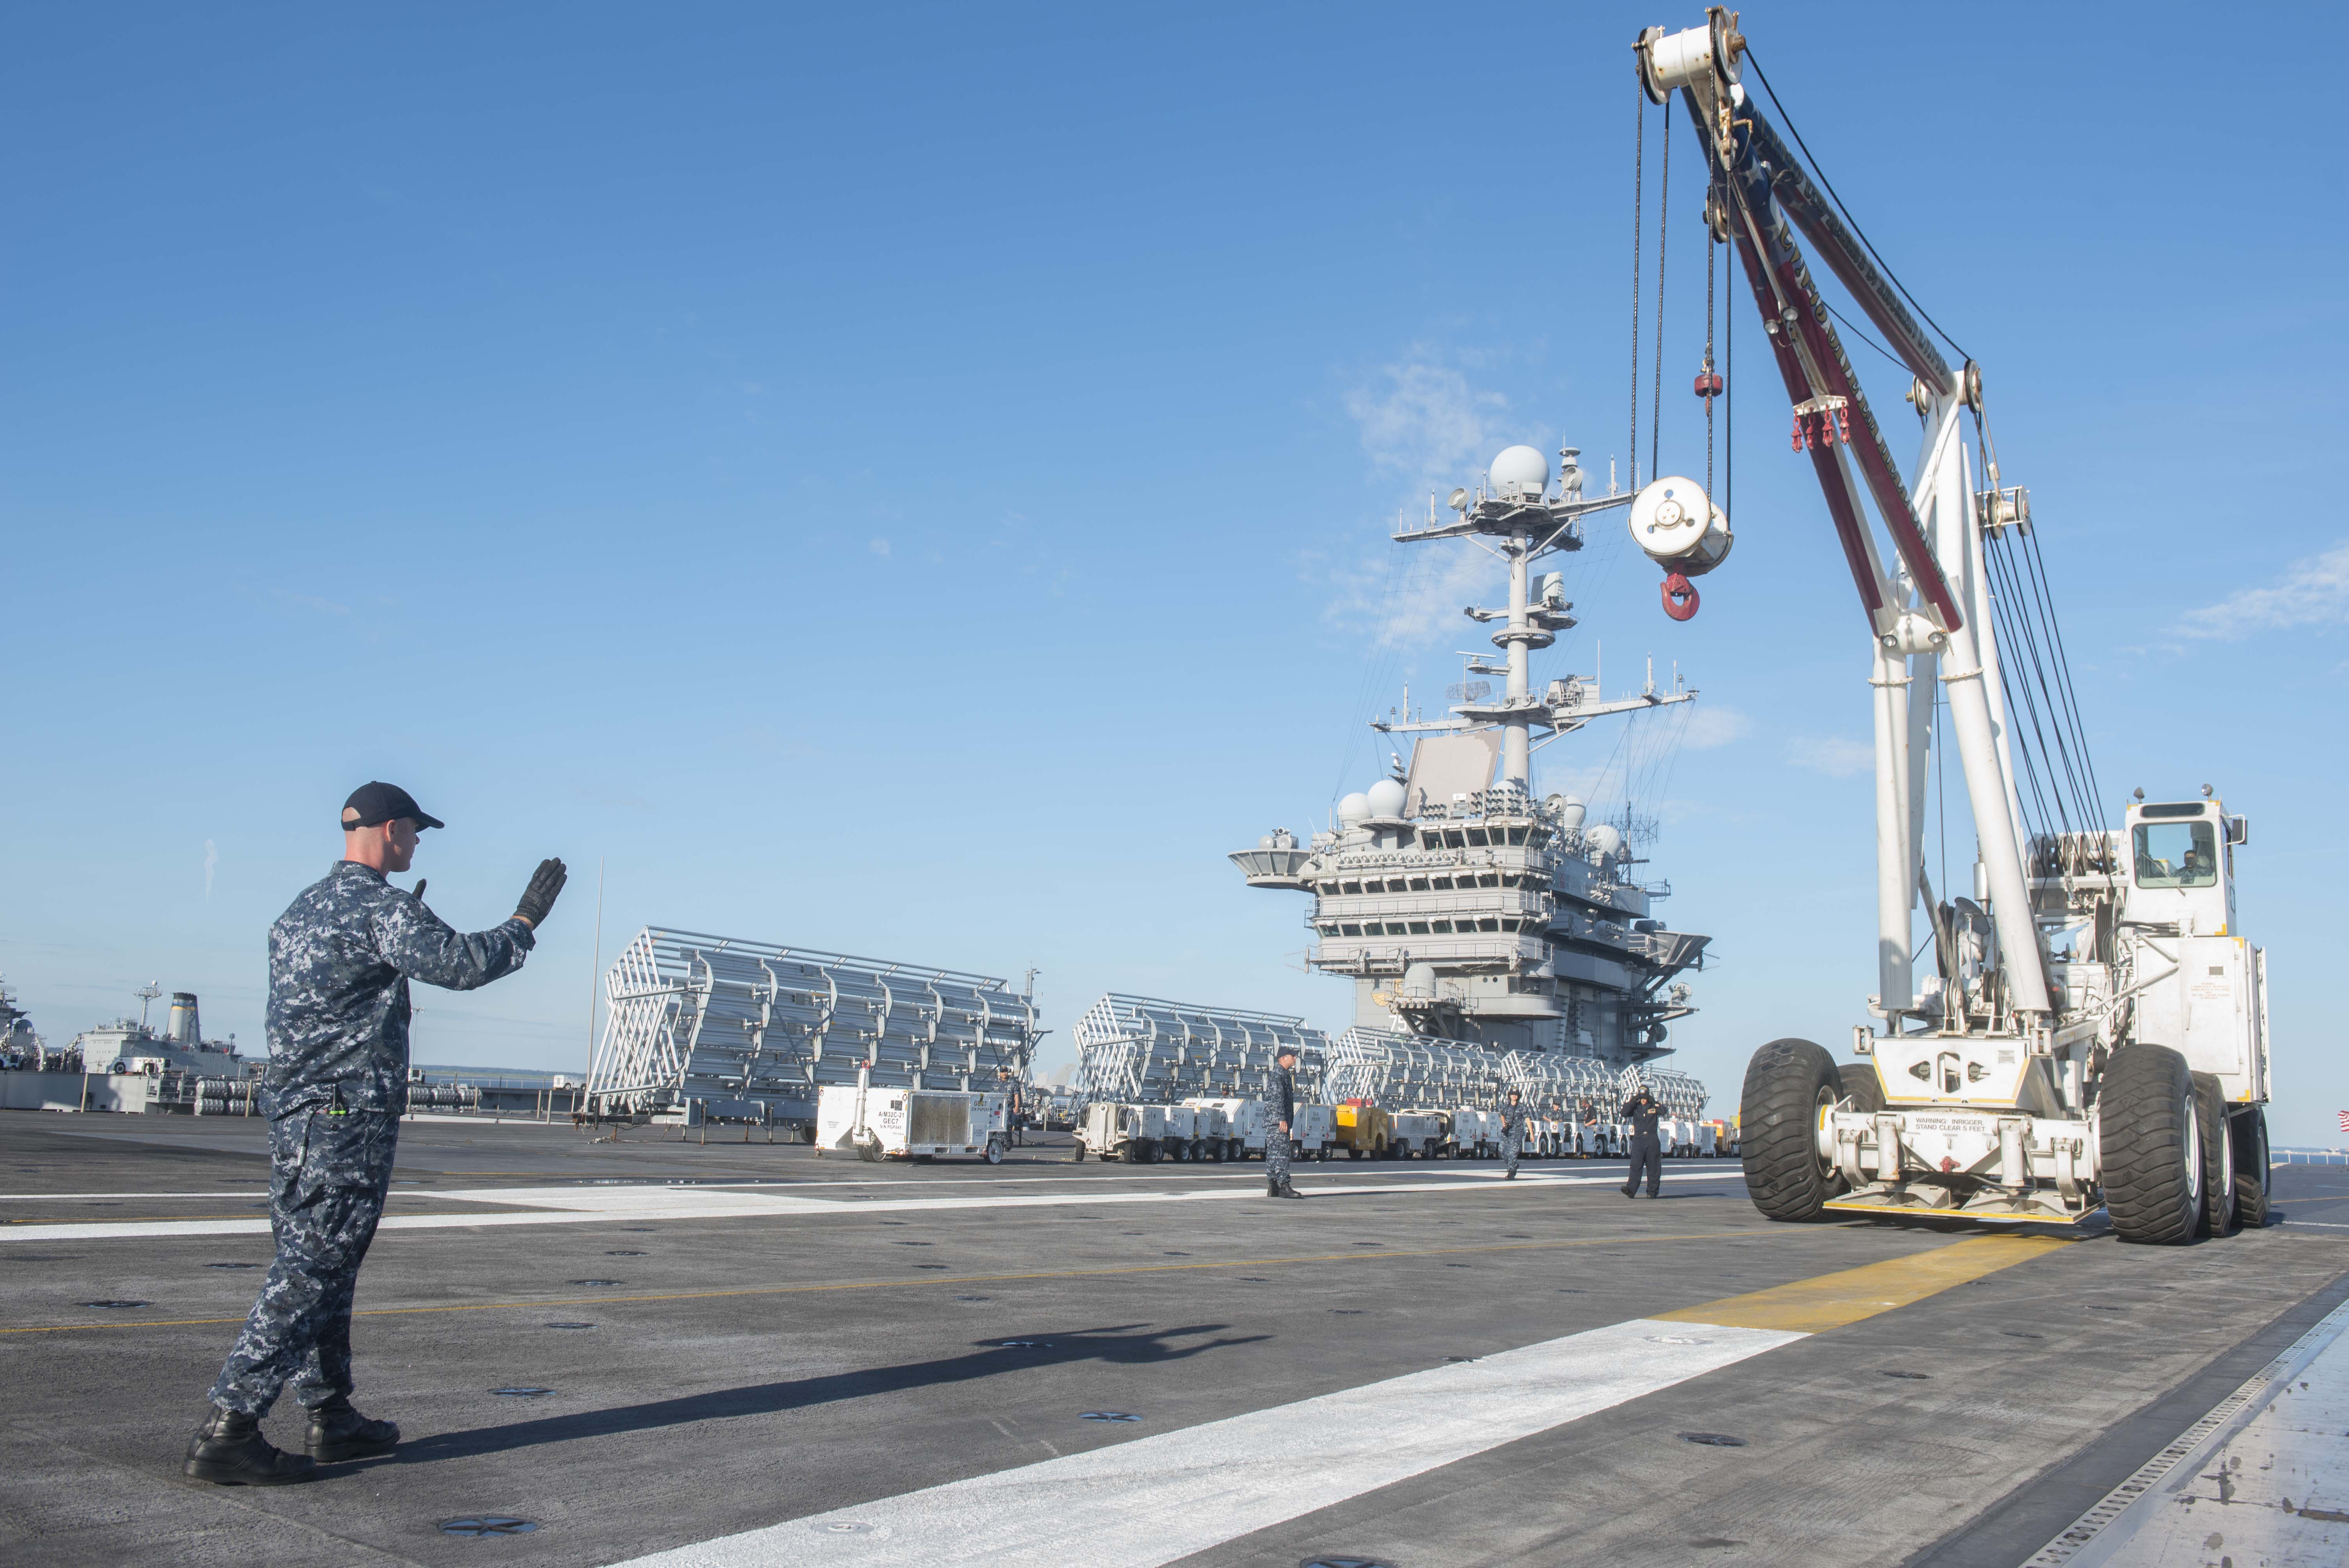 Aviation Boatswain's Mate (Handling) 1st Class Michael Osborne directs the offload process for the mobile crash crane on the flight deck of aircraft carrier USS Harry S. Truman (CVN-75). US Navy Photo